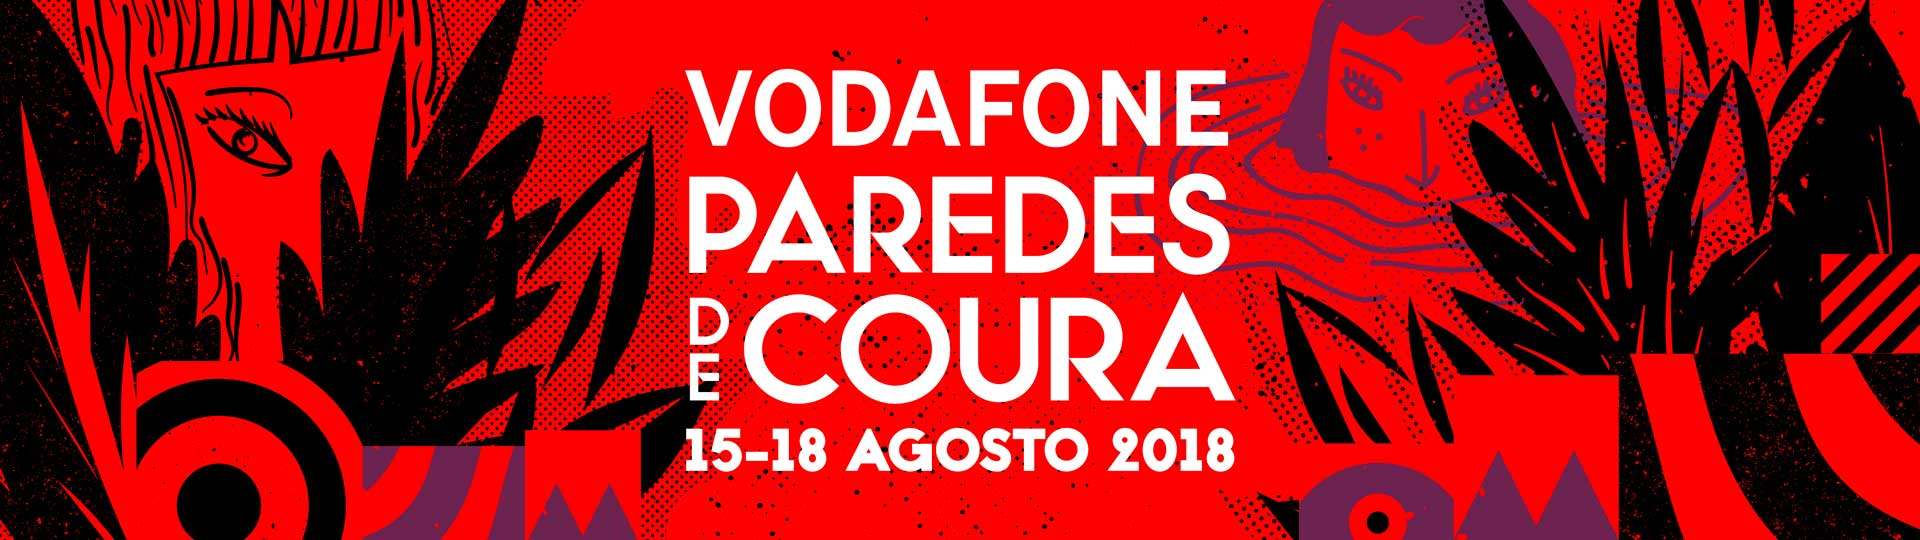 VODAFONE PAREDES DE COURA 2018